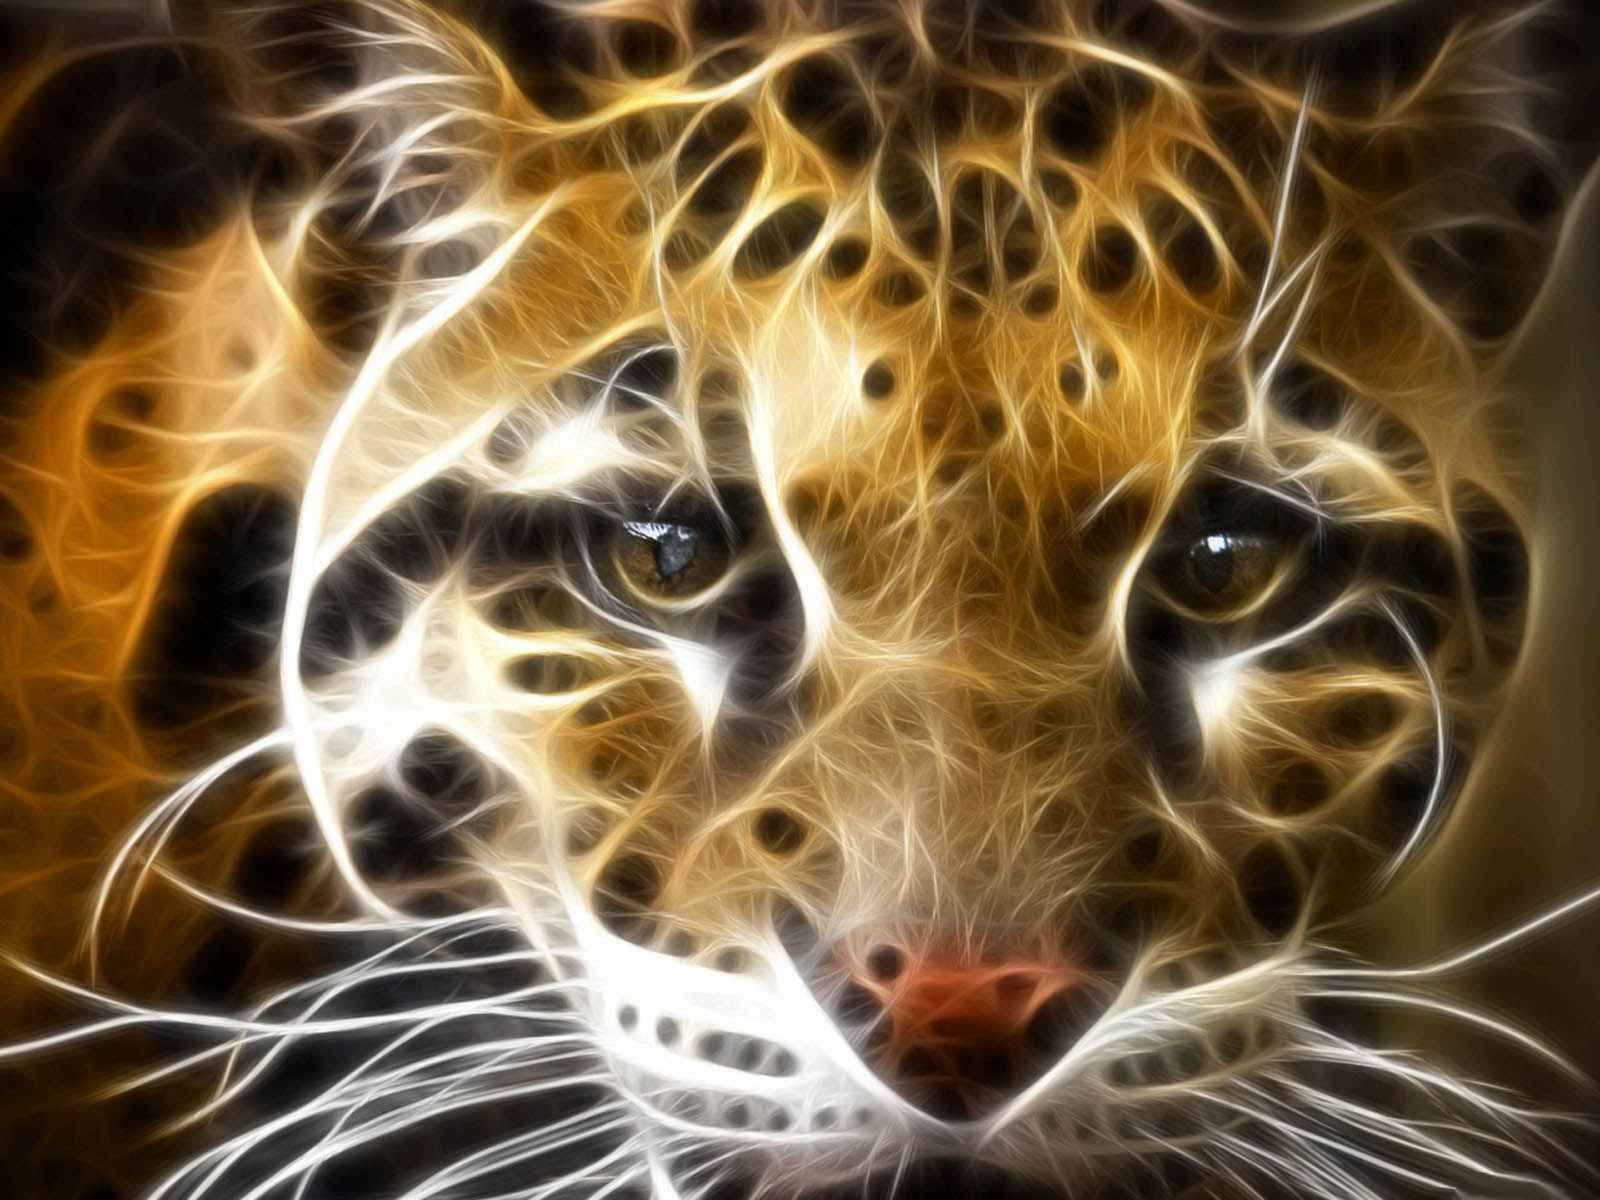 Tag Tiger 3D Wallpapers Images Photos Pictures And Backgrounds 1600x1200